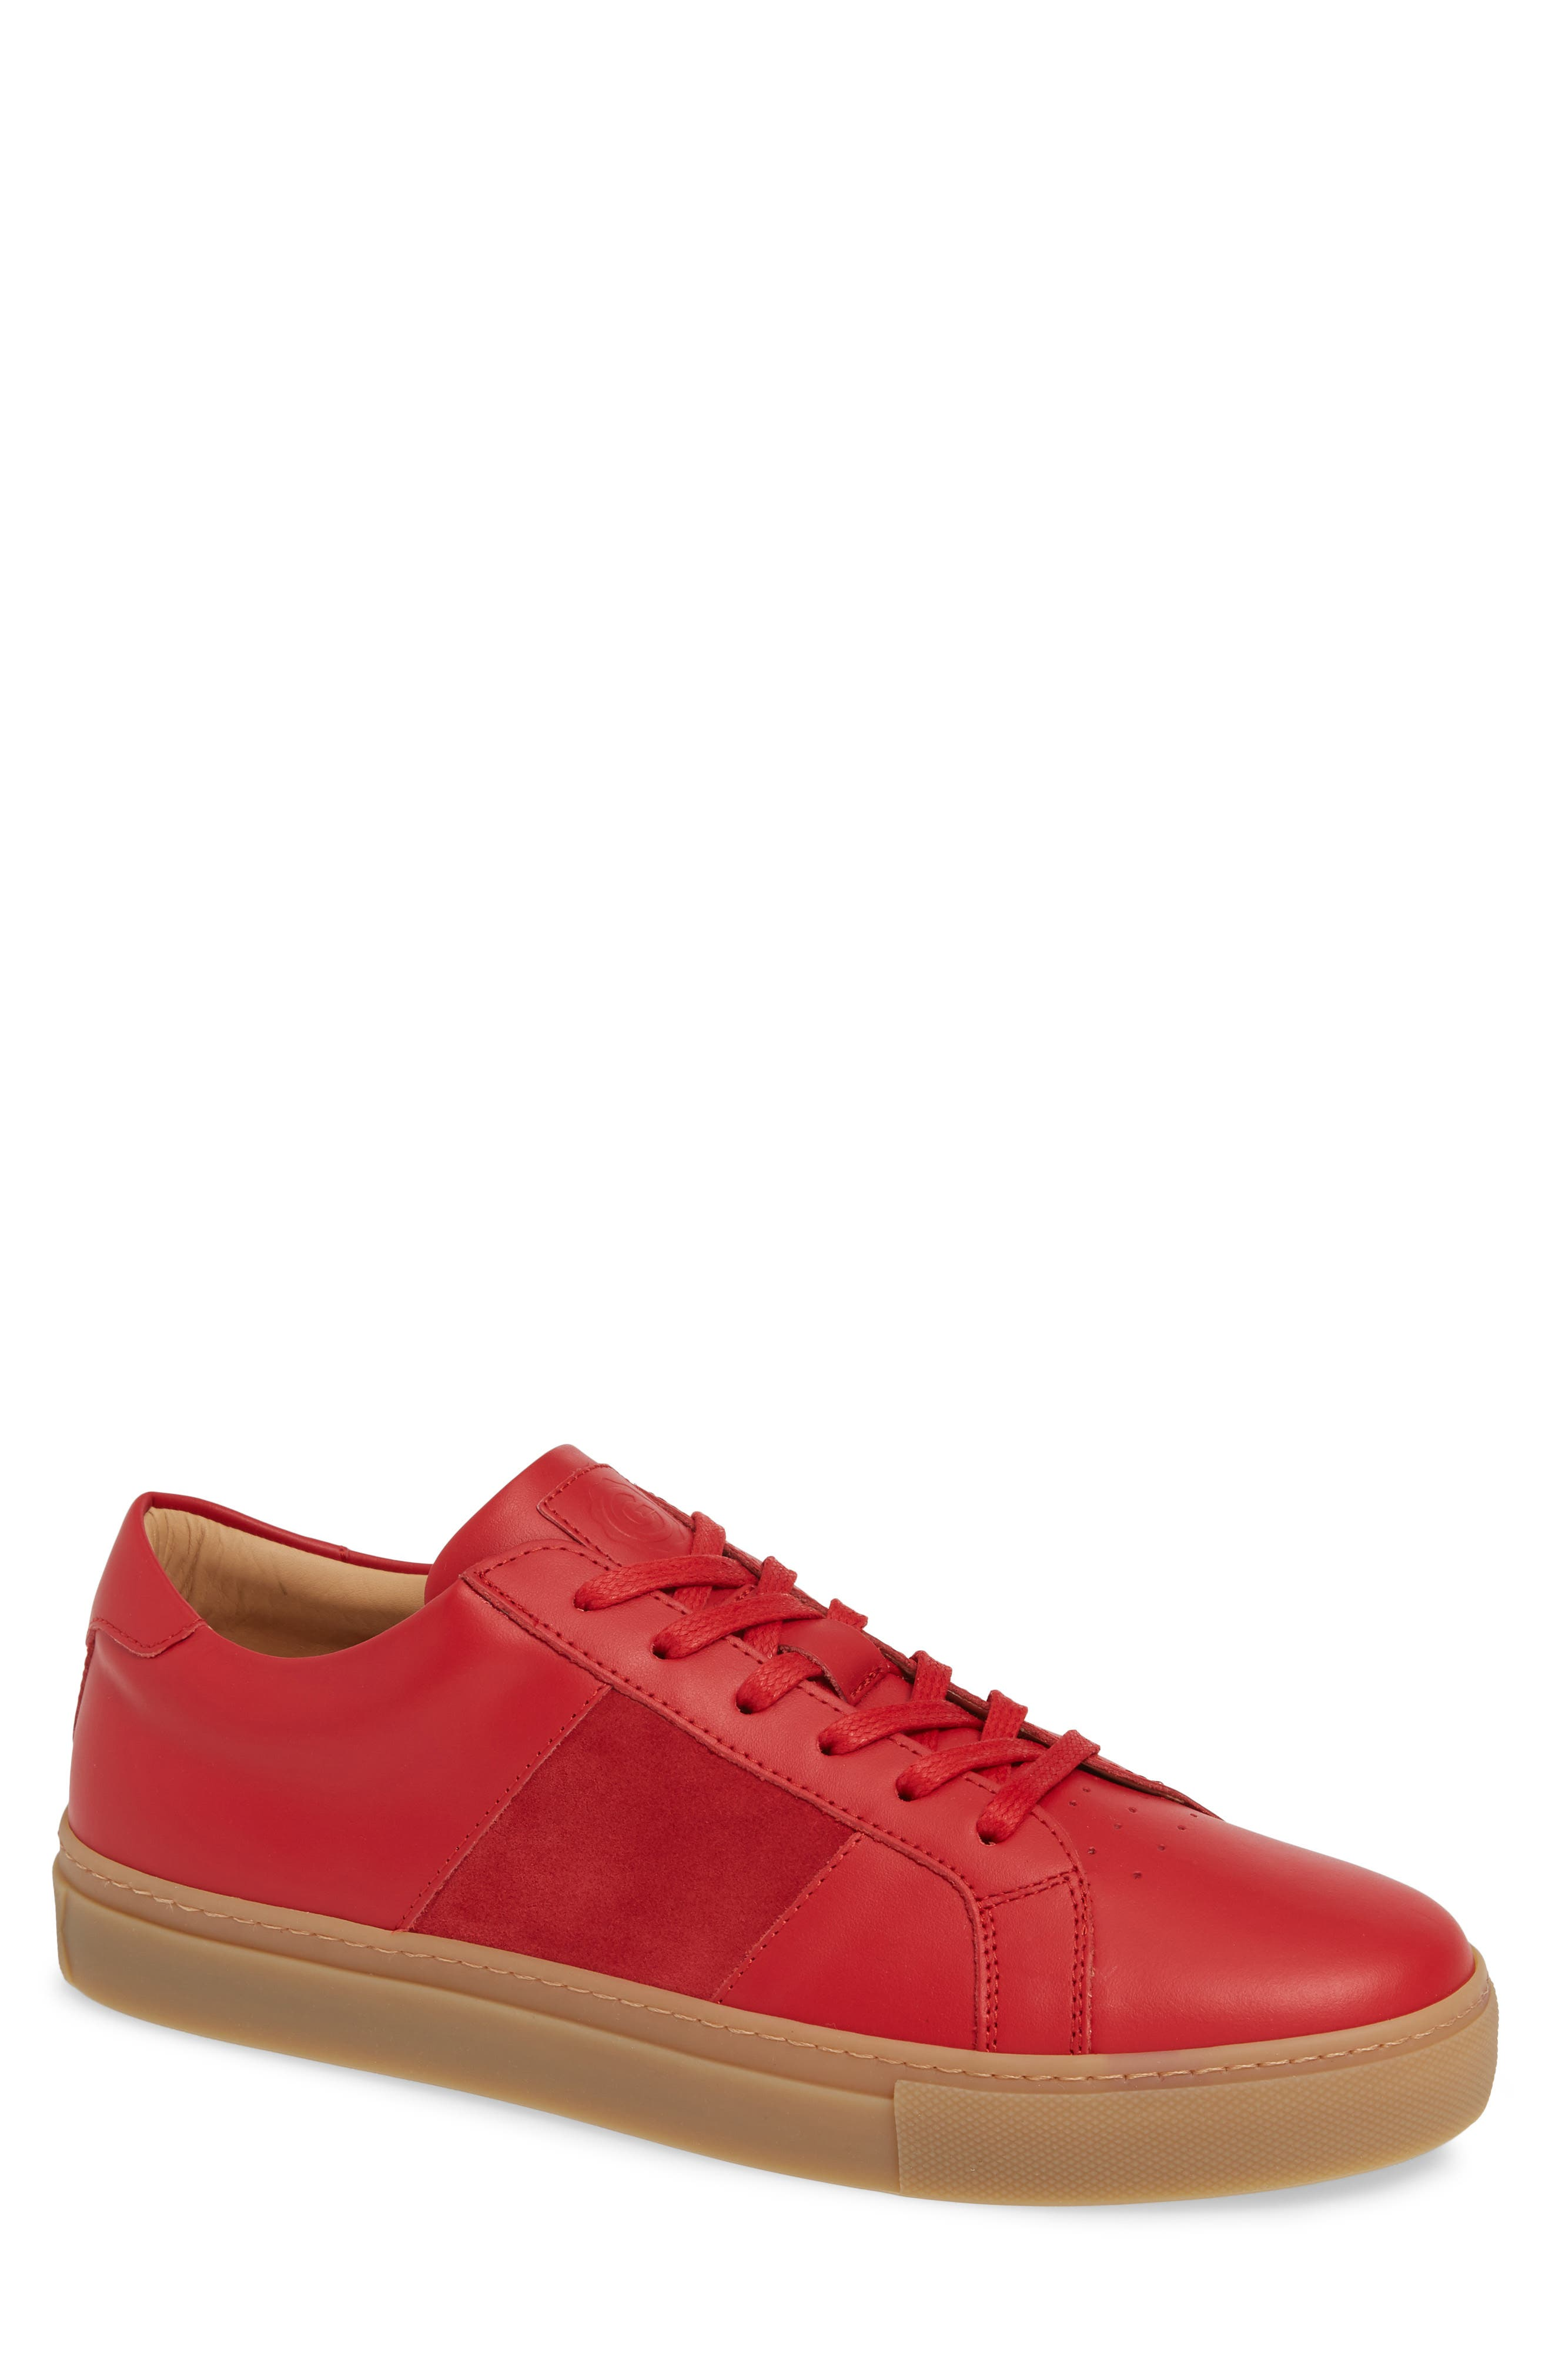 Royale Sneaker,                             Main thumbnail 1, color,                             RED/ GUM LEATHER